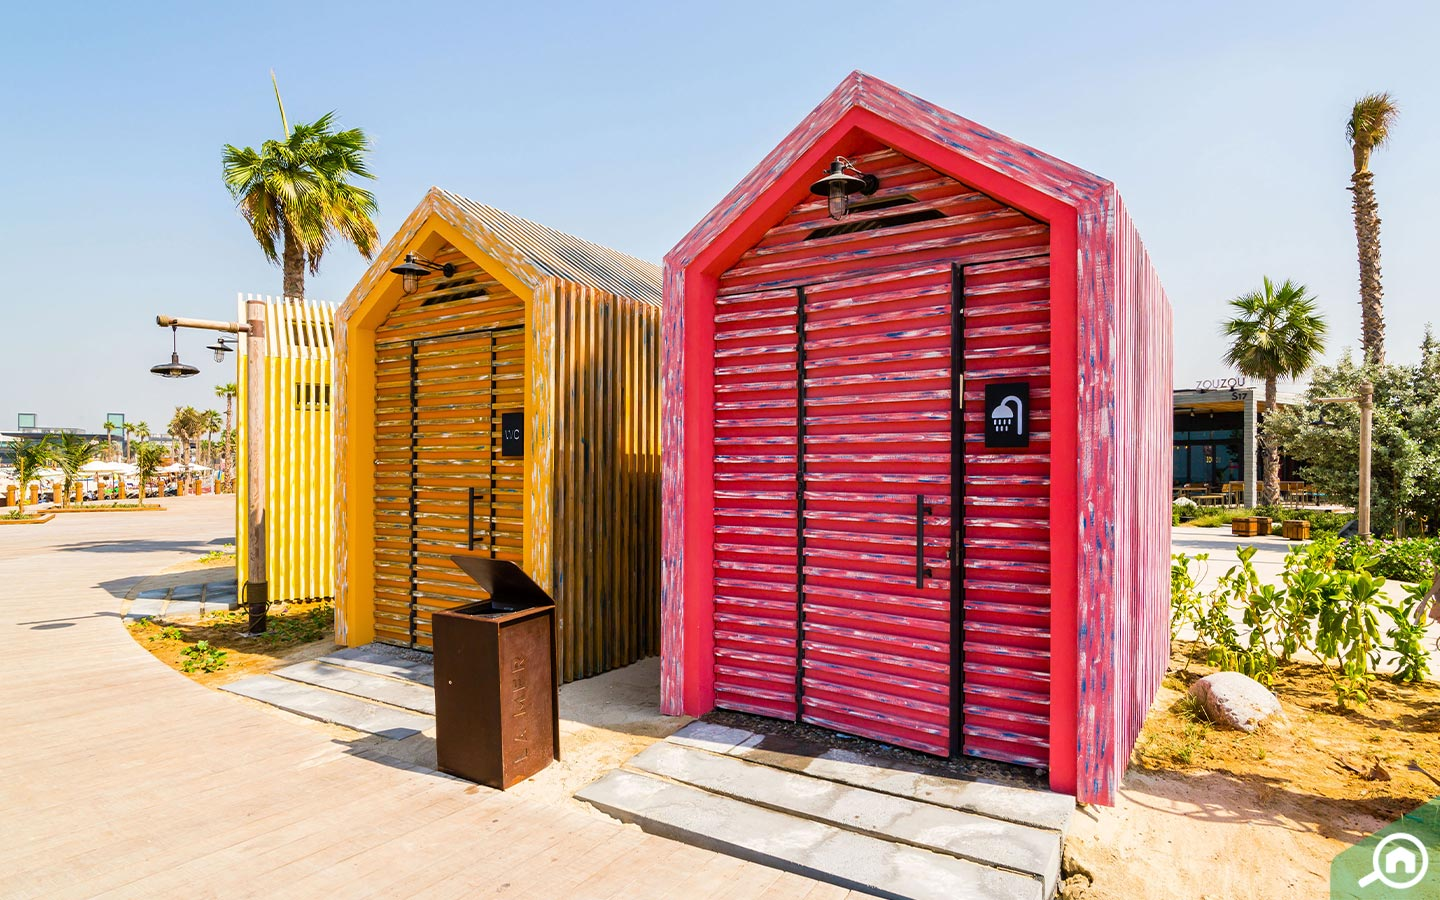 Two colourful and quirky indoor showers at La Mer Beach